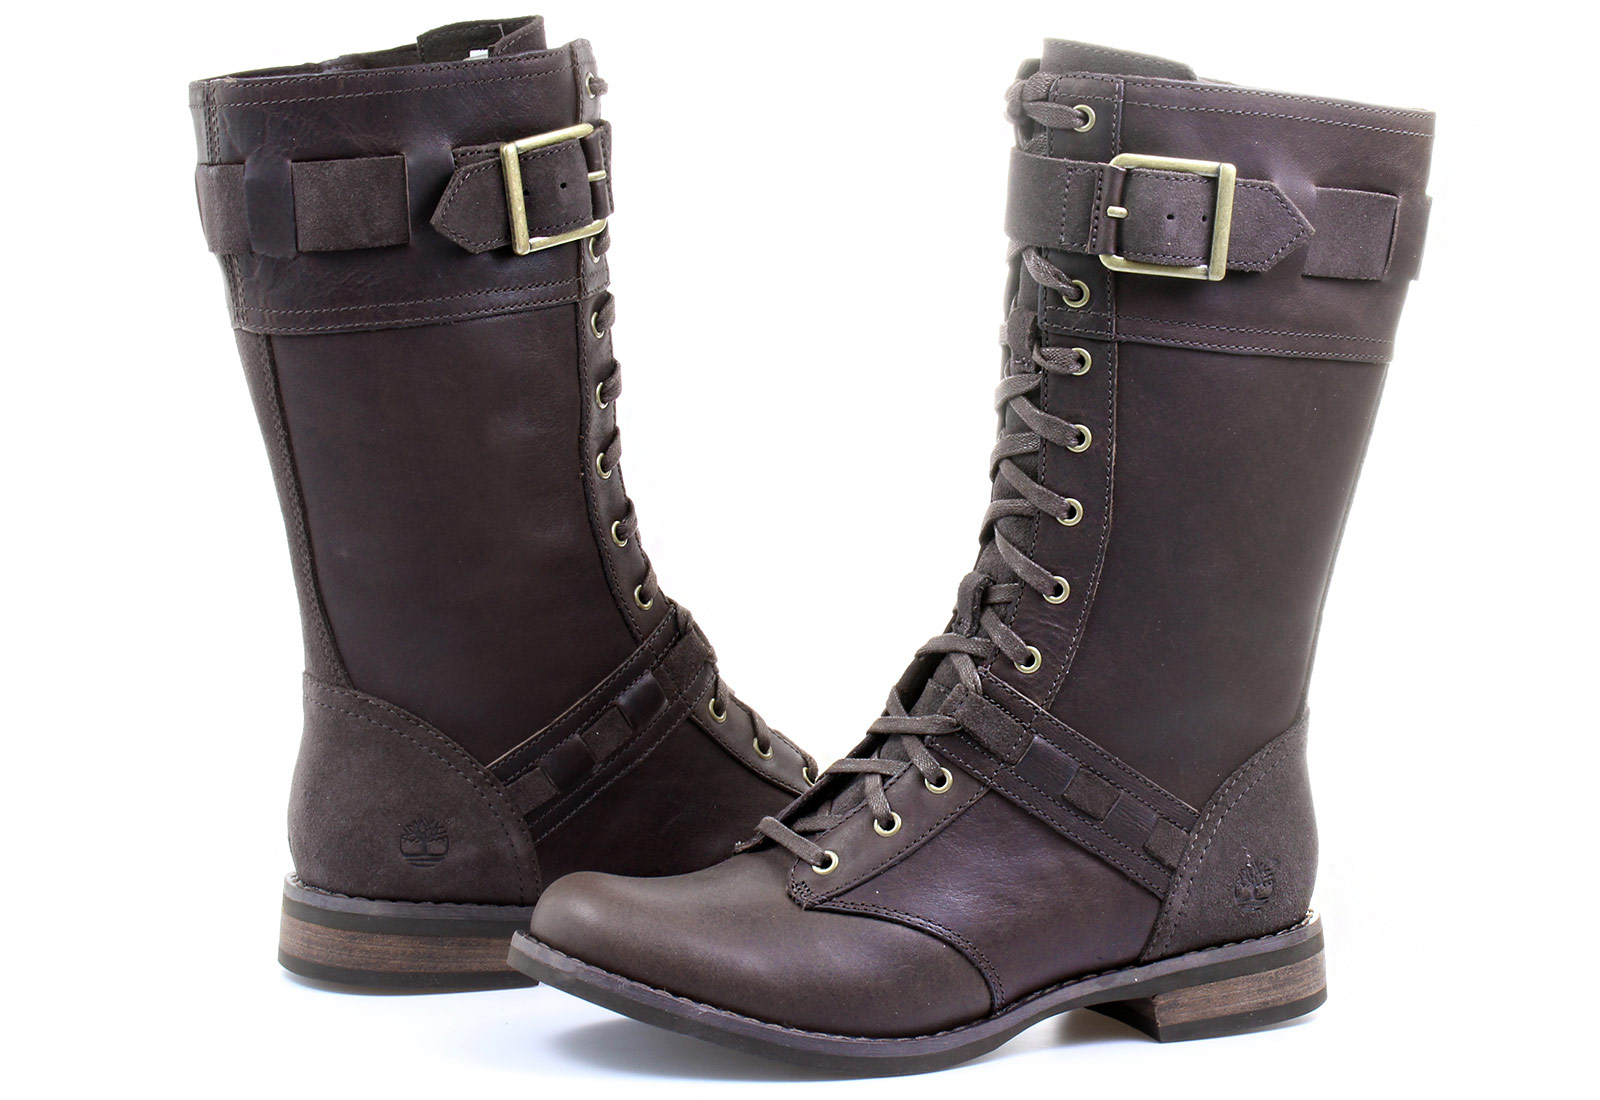 b25bca7704f Timberland Boots - Ek Savin Hill Mid - 8541R-DBR - Online shop for  sneakers, shoes and boots